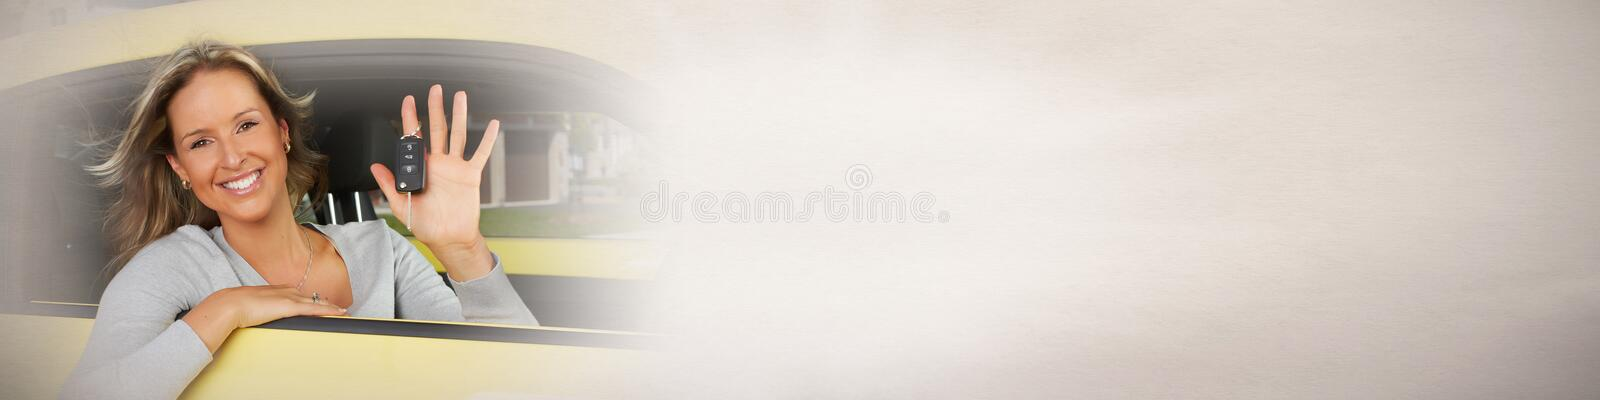 Driver woman. Young happy smiling driver girl with car key stock image